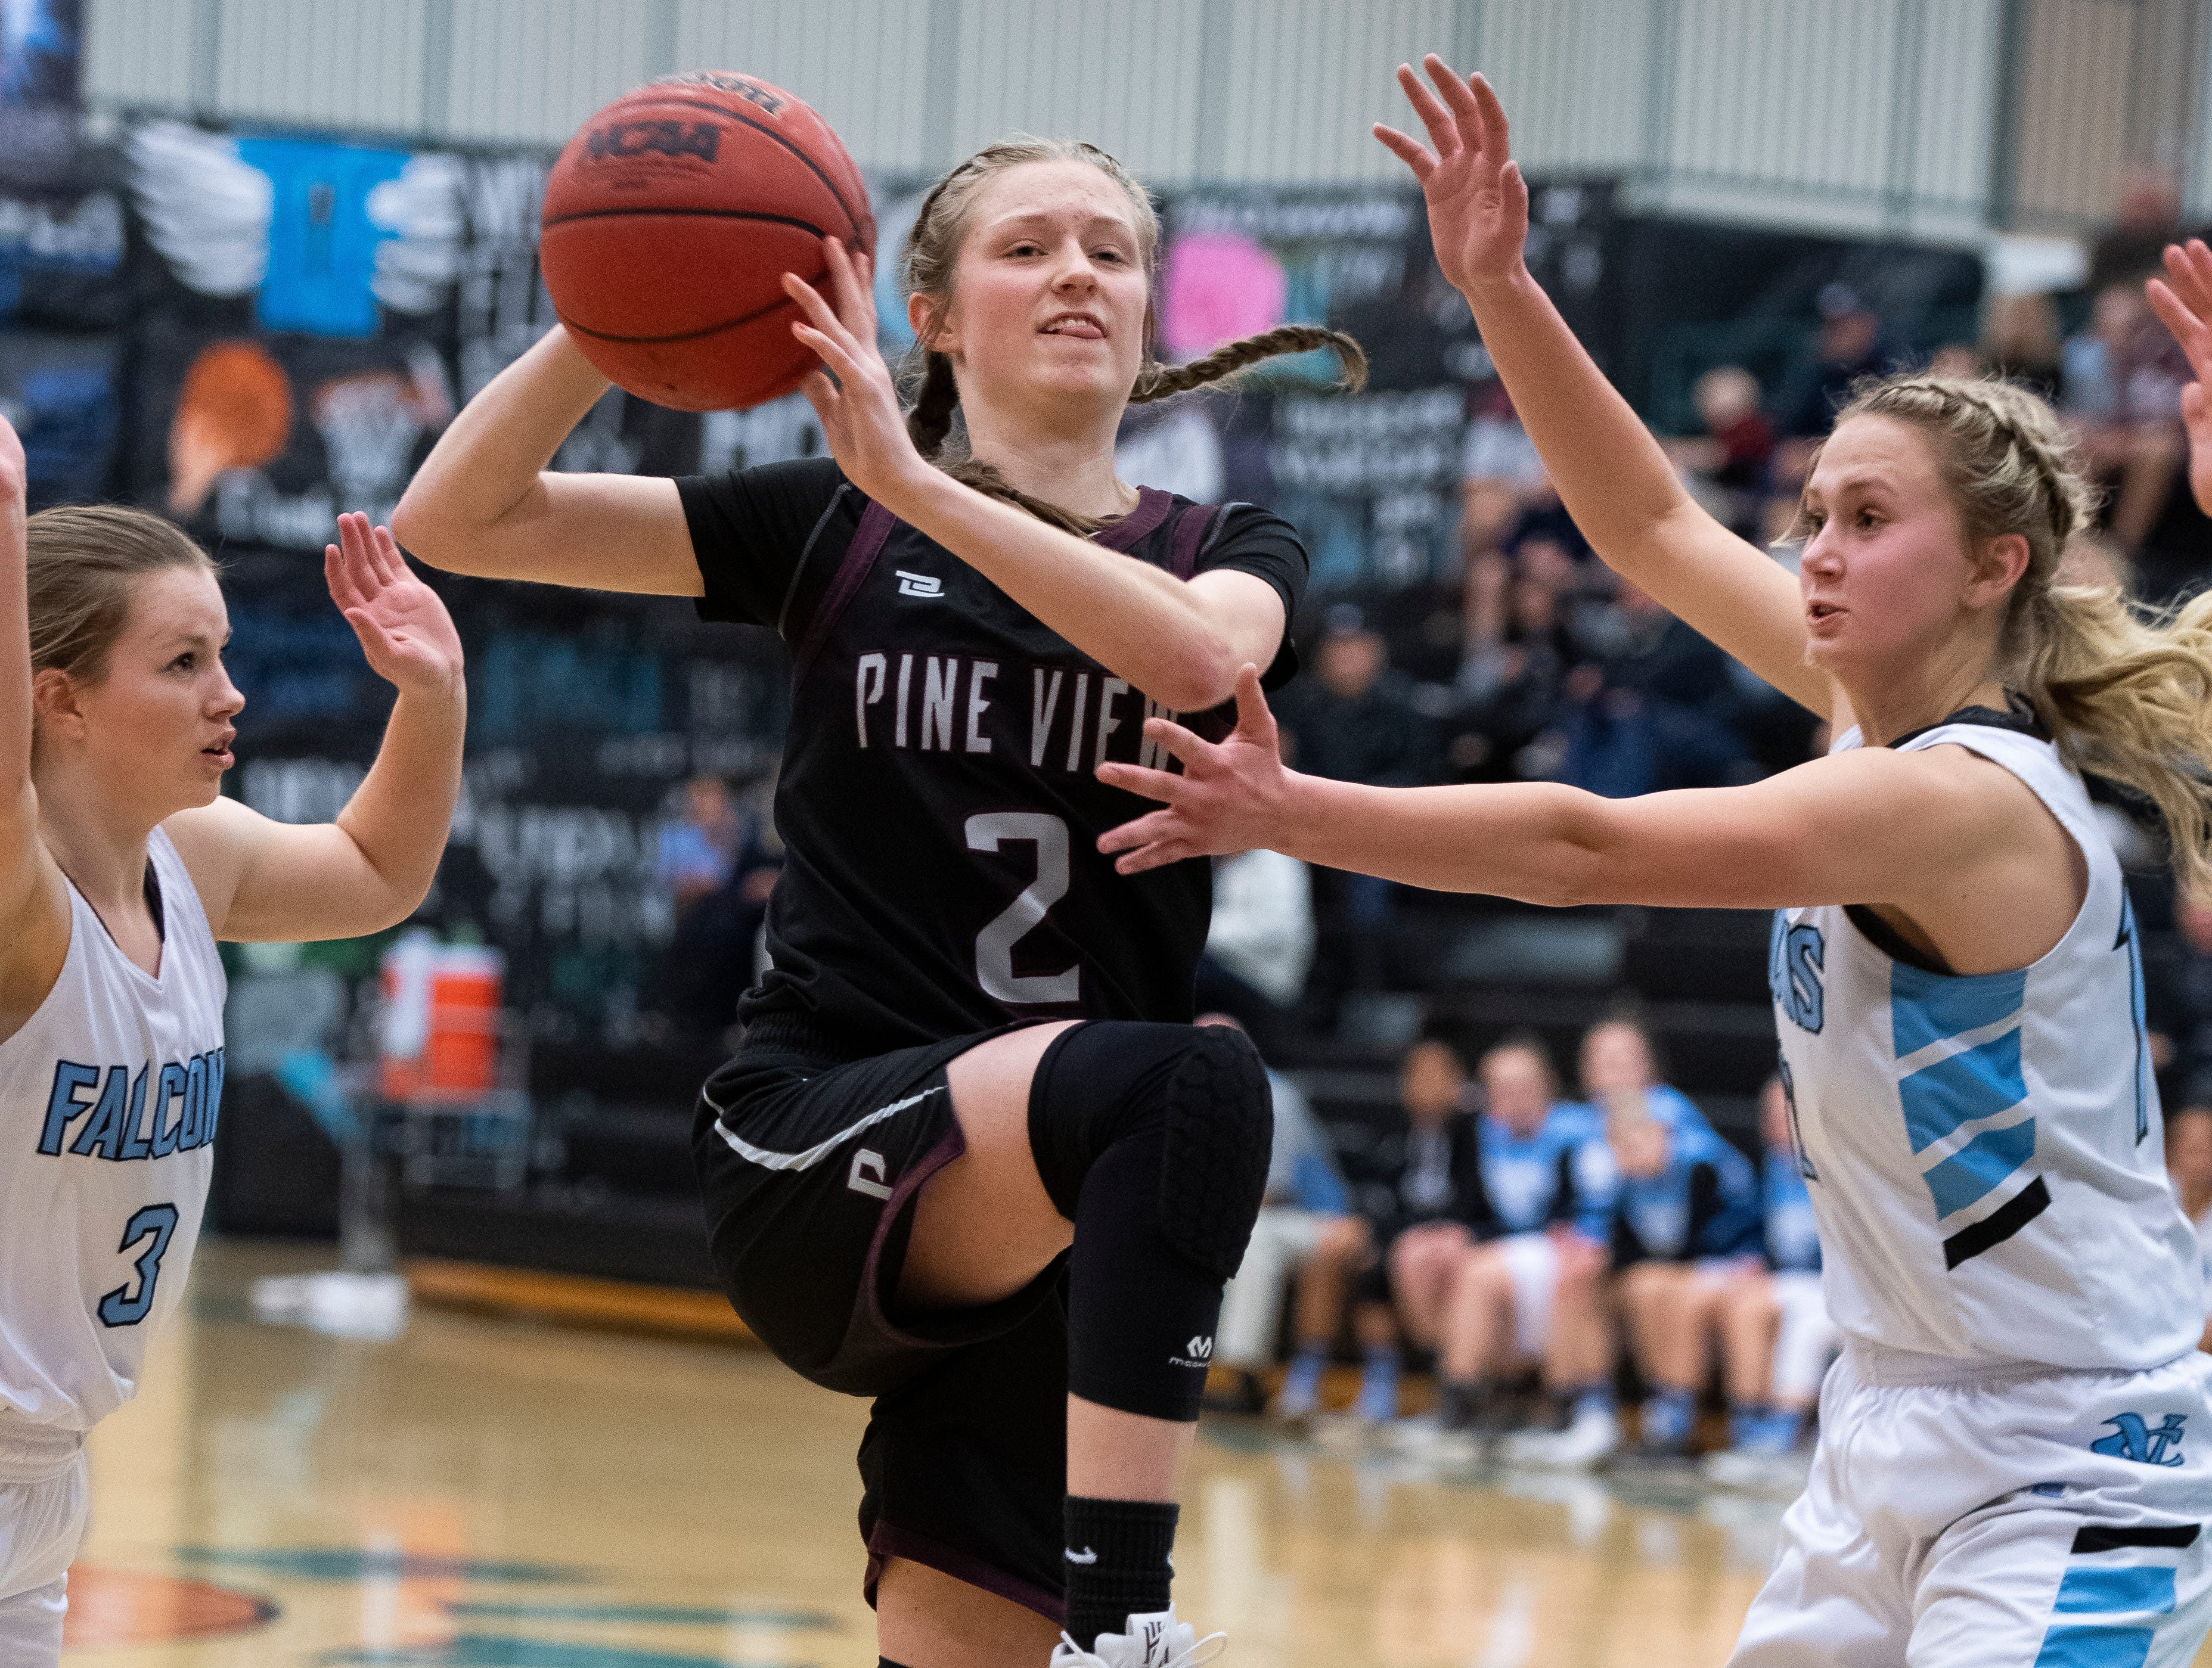 Pine View High School junior Ellie Wilson (2) throws a flying pass against Canyon View at CVHS Tuesday, January 15, 2019. The CVHS Falcons won, 48-46.